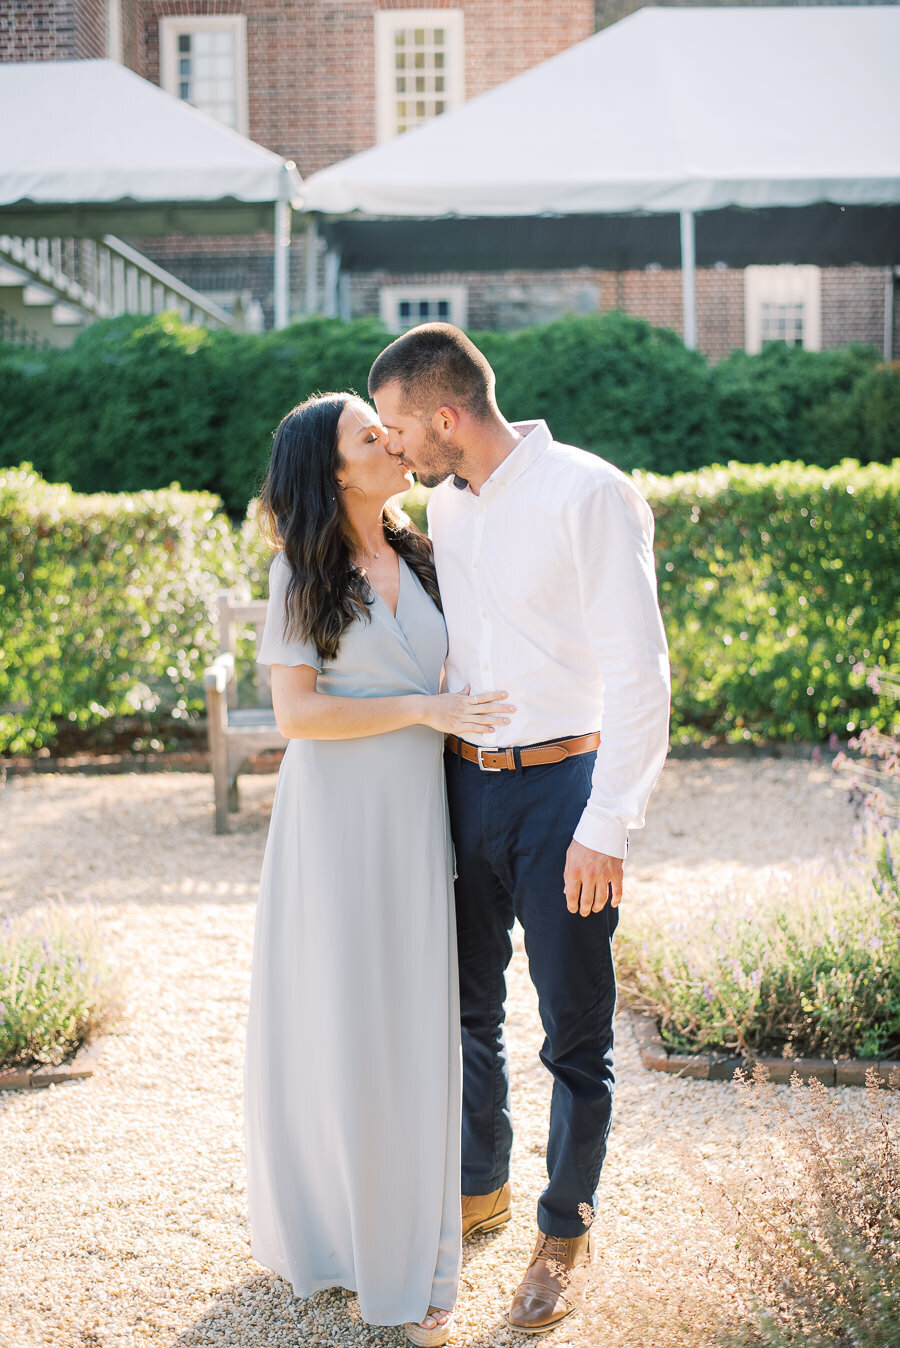 William_Paca_Gardens_Engagement_Session_Megan_Harris_Photography-3